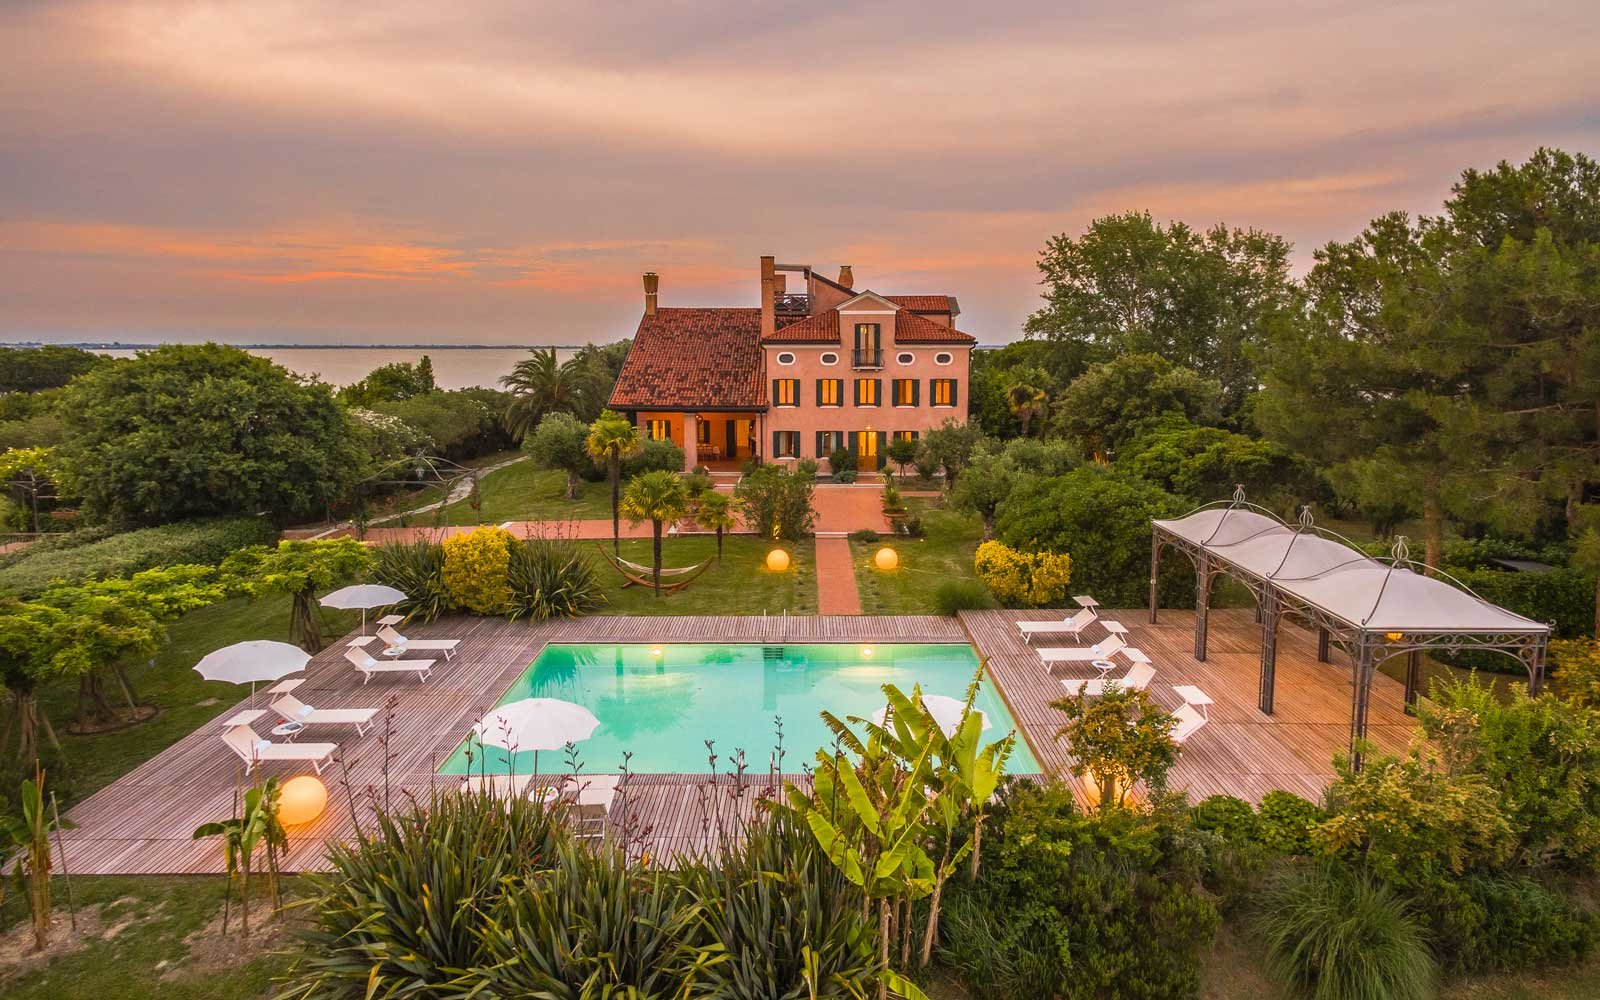 An Inside Look at the Swarovski Family's Private Island Retreat in Venice